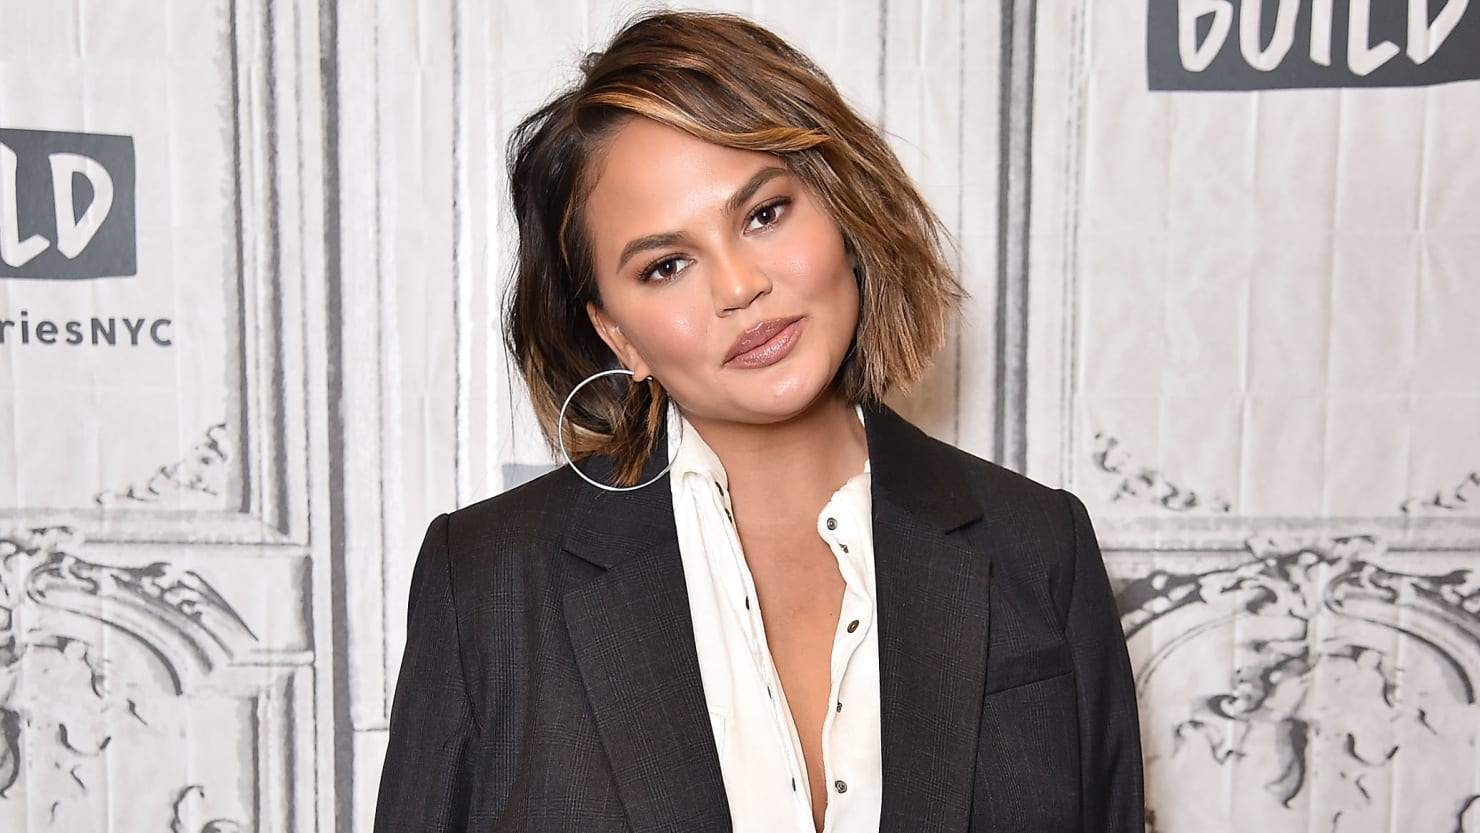 Chrissy Teigen Goes Off on Fox News' Laura Ingraham Over Time 100 Rant, Calls Her a 'White Supremacist' ...